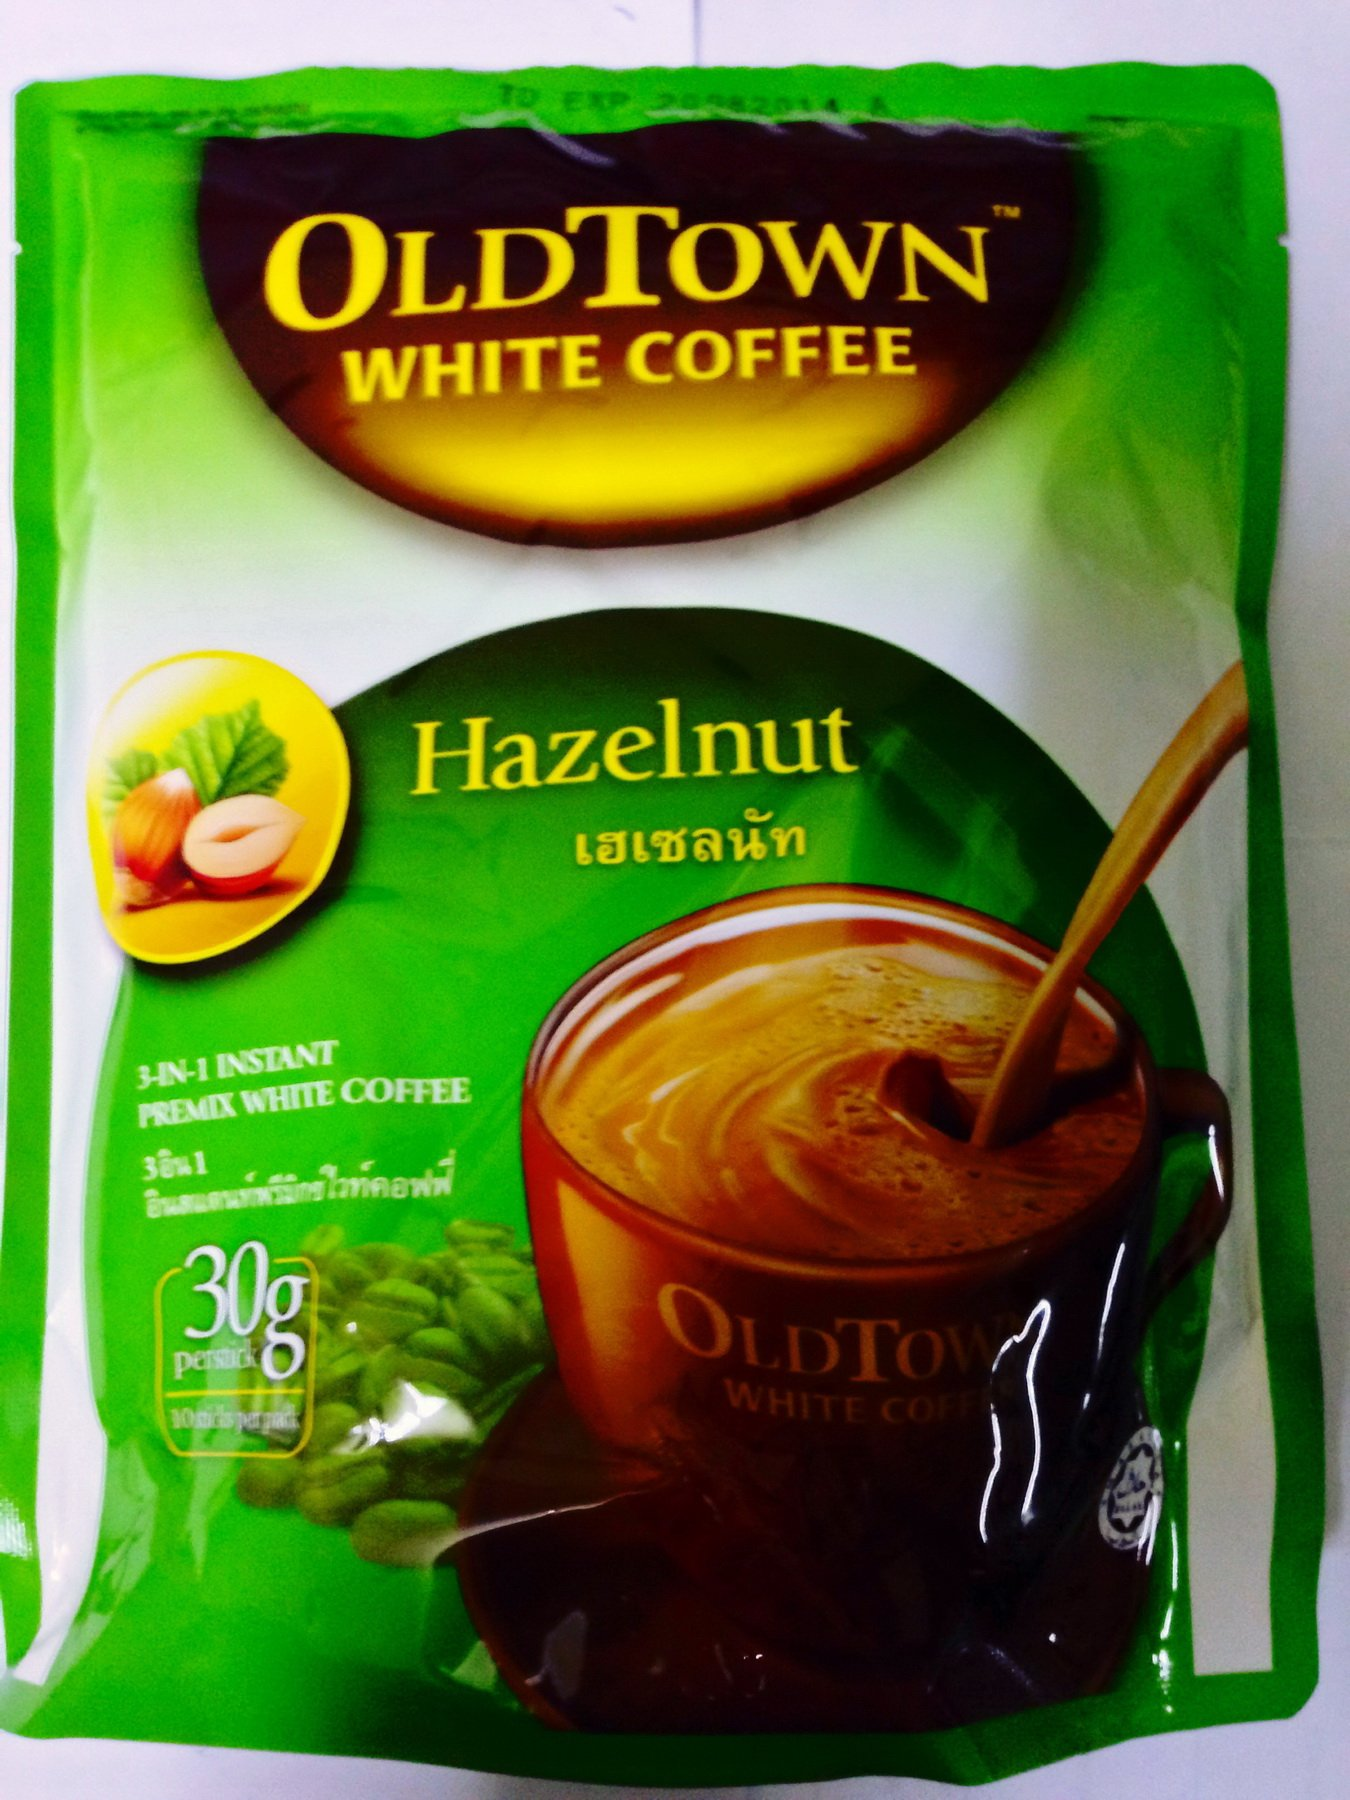 Old Town Instant 3 in 1 Premix White Coffee Hazelnut, 300g(30gx10sticks)